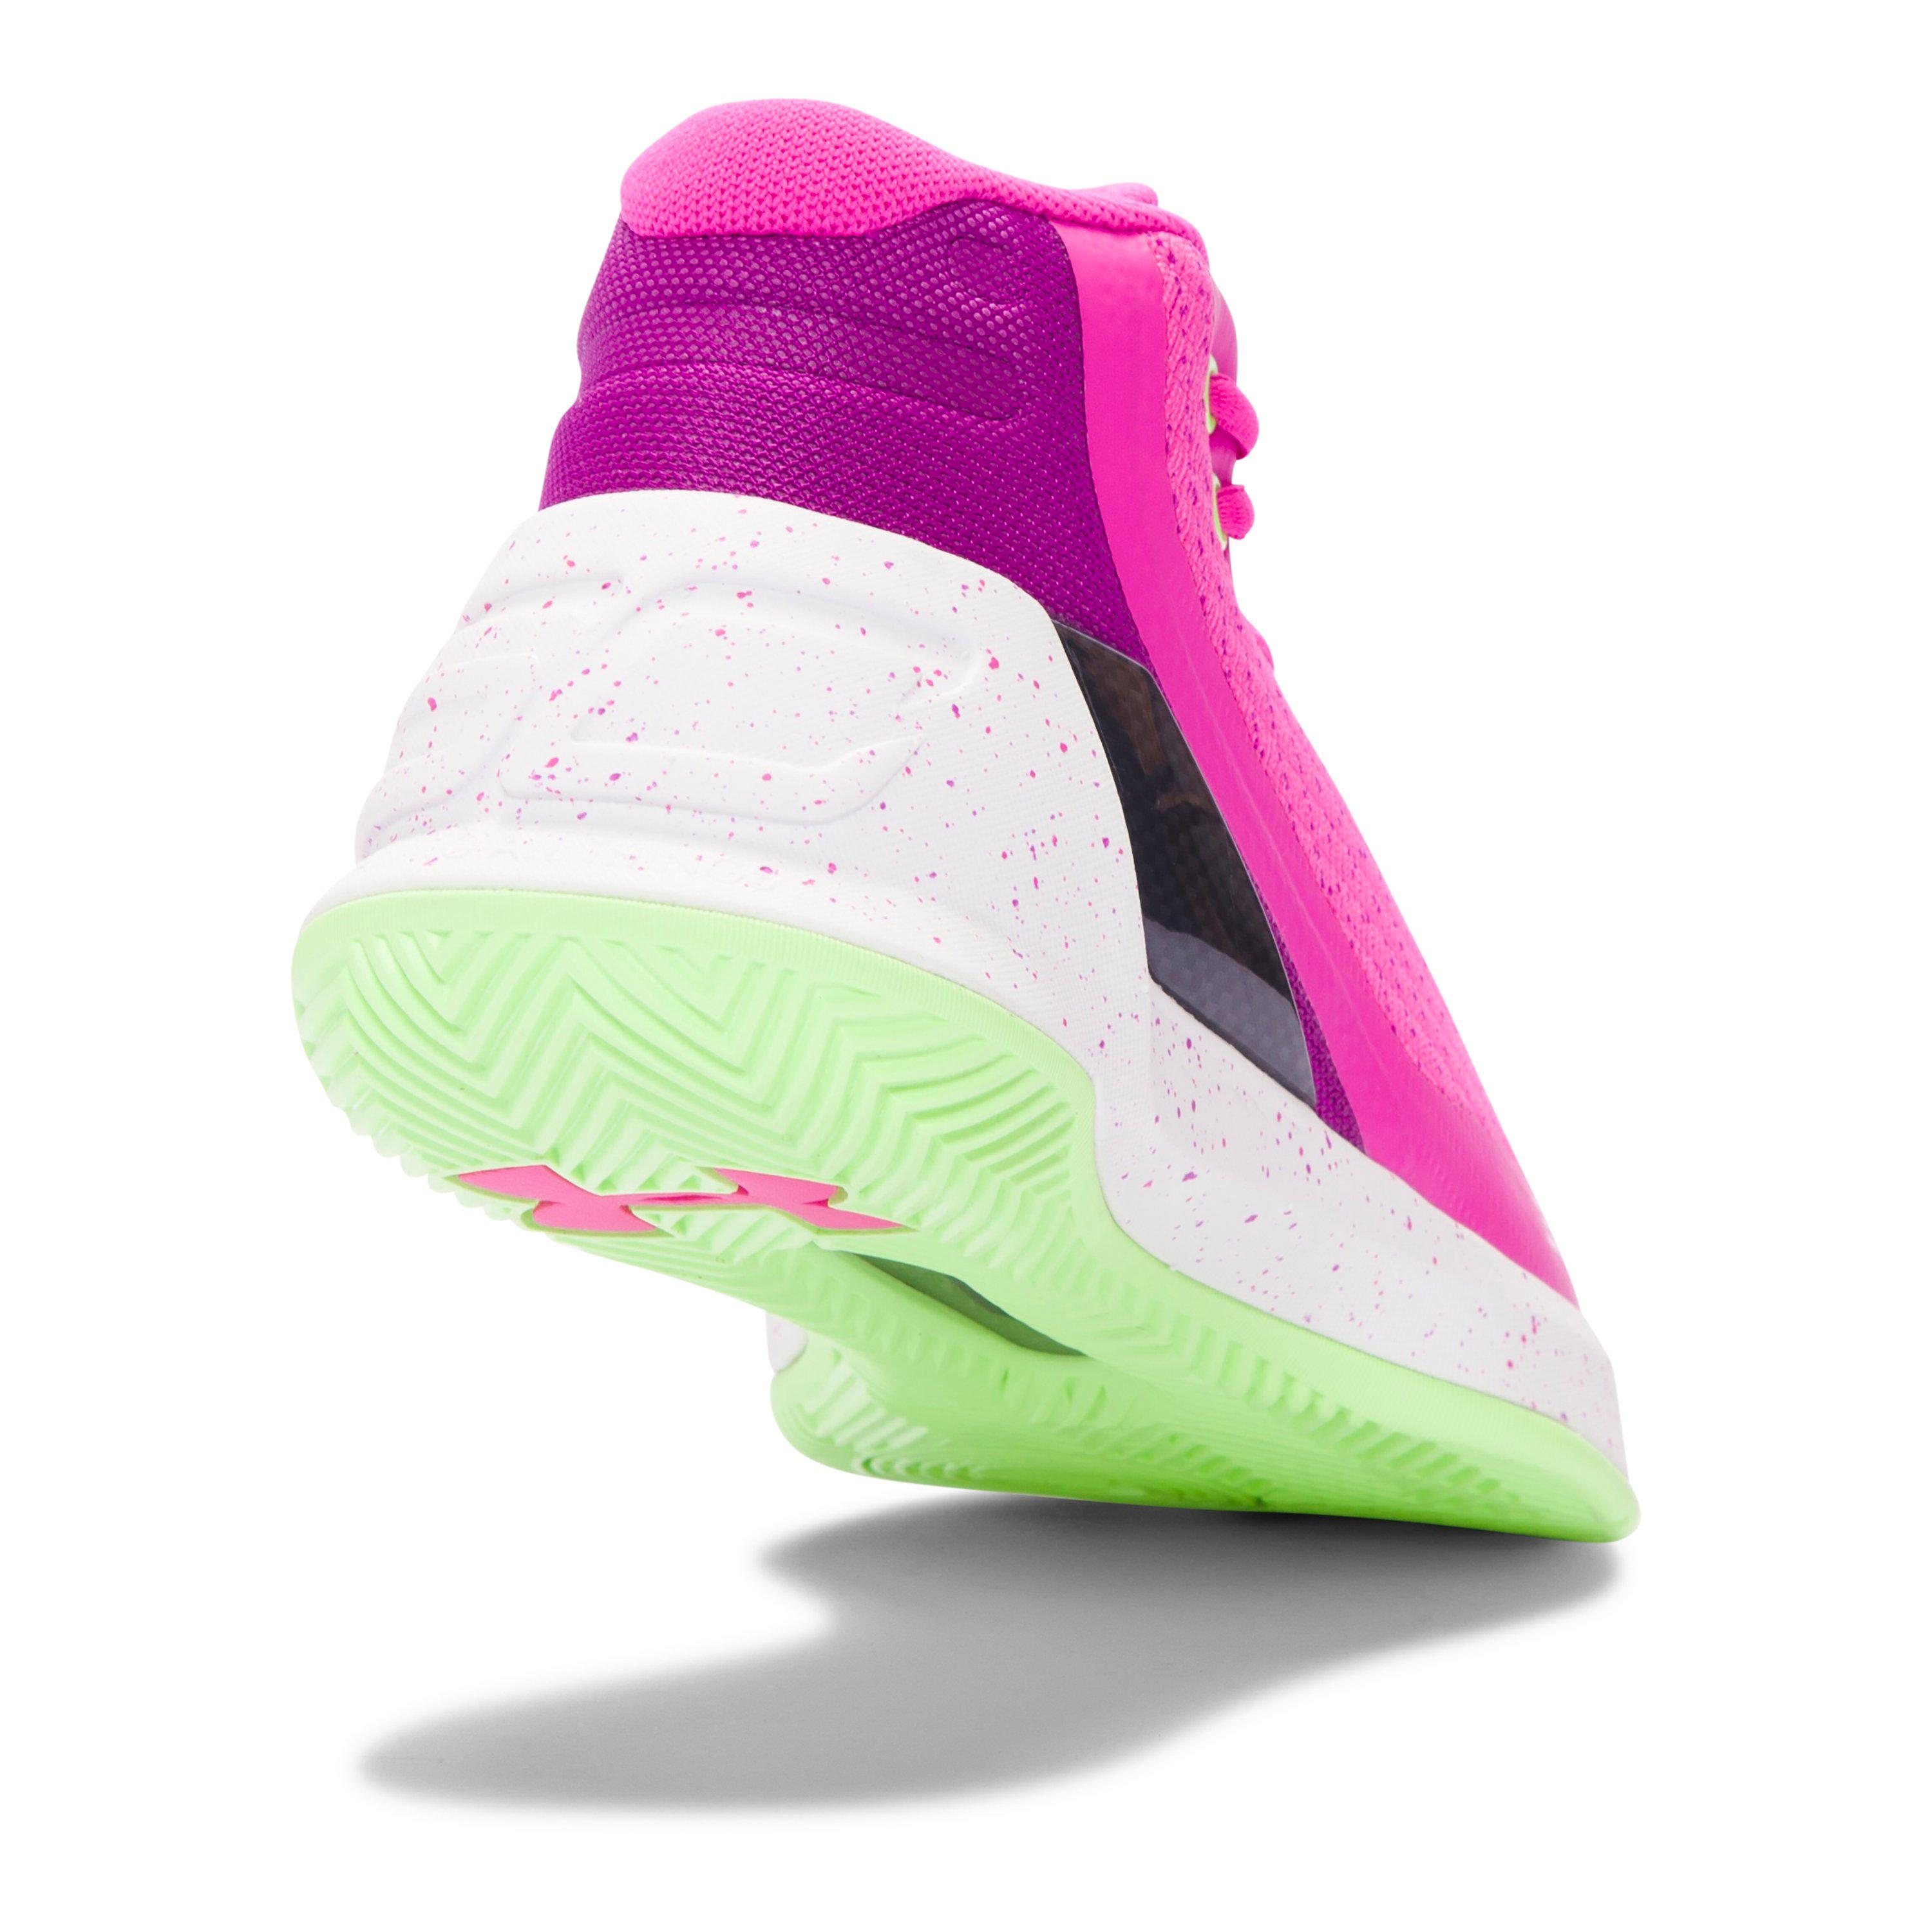 new concept 2037b 9ffa7 release date ua curry 3 pink green ab1df 5d2f7